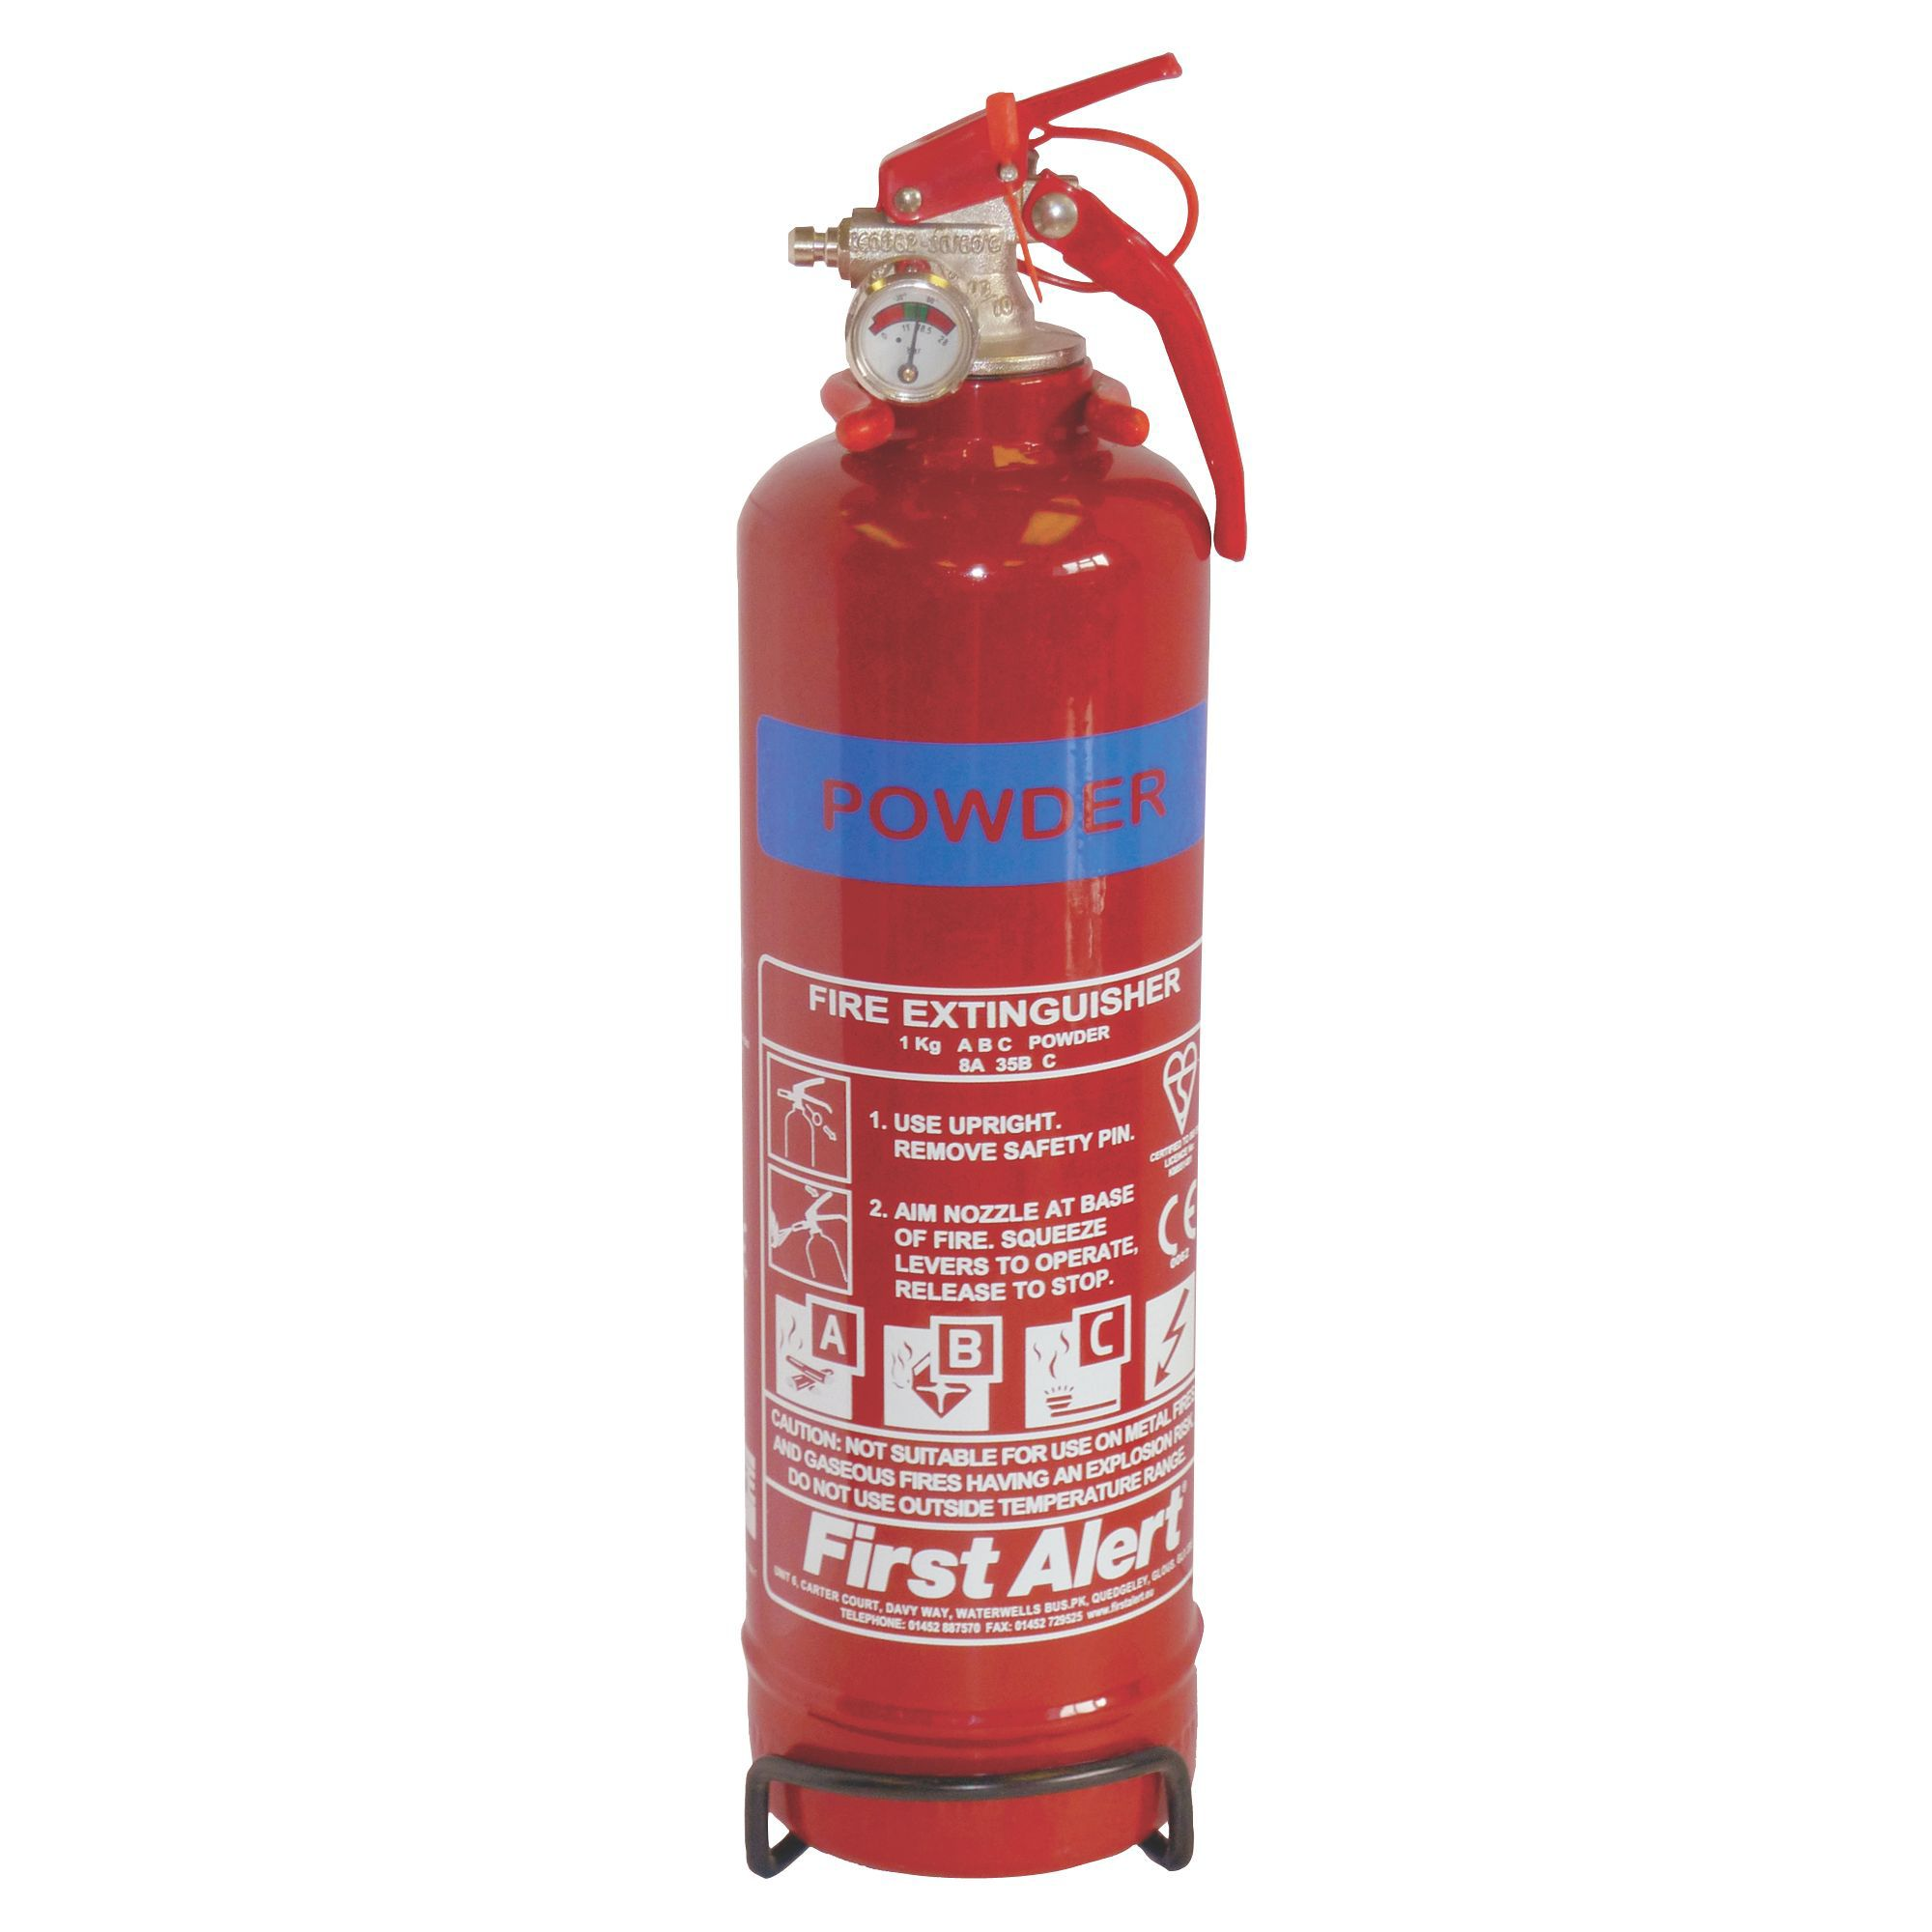 First Alert Powder Fire Extinguisher 1kg Departments